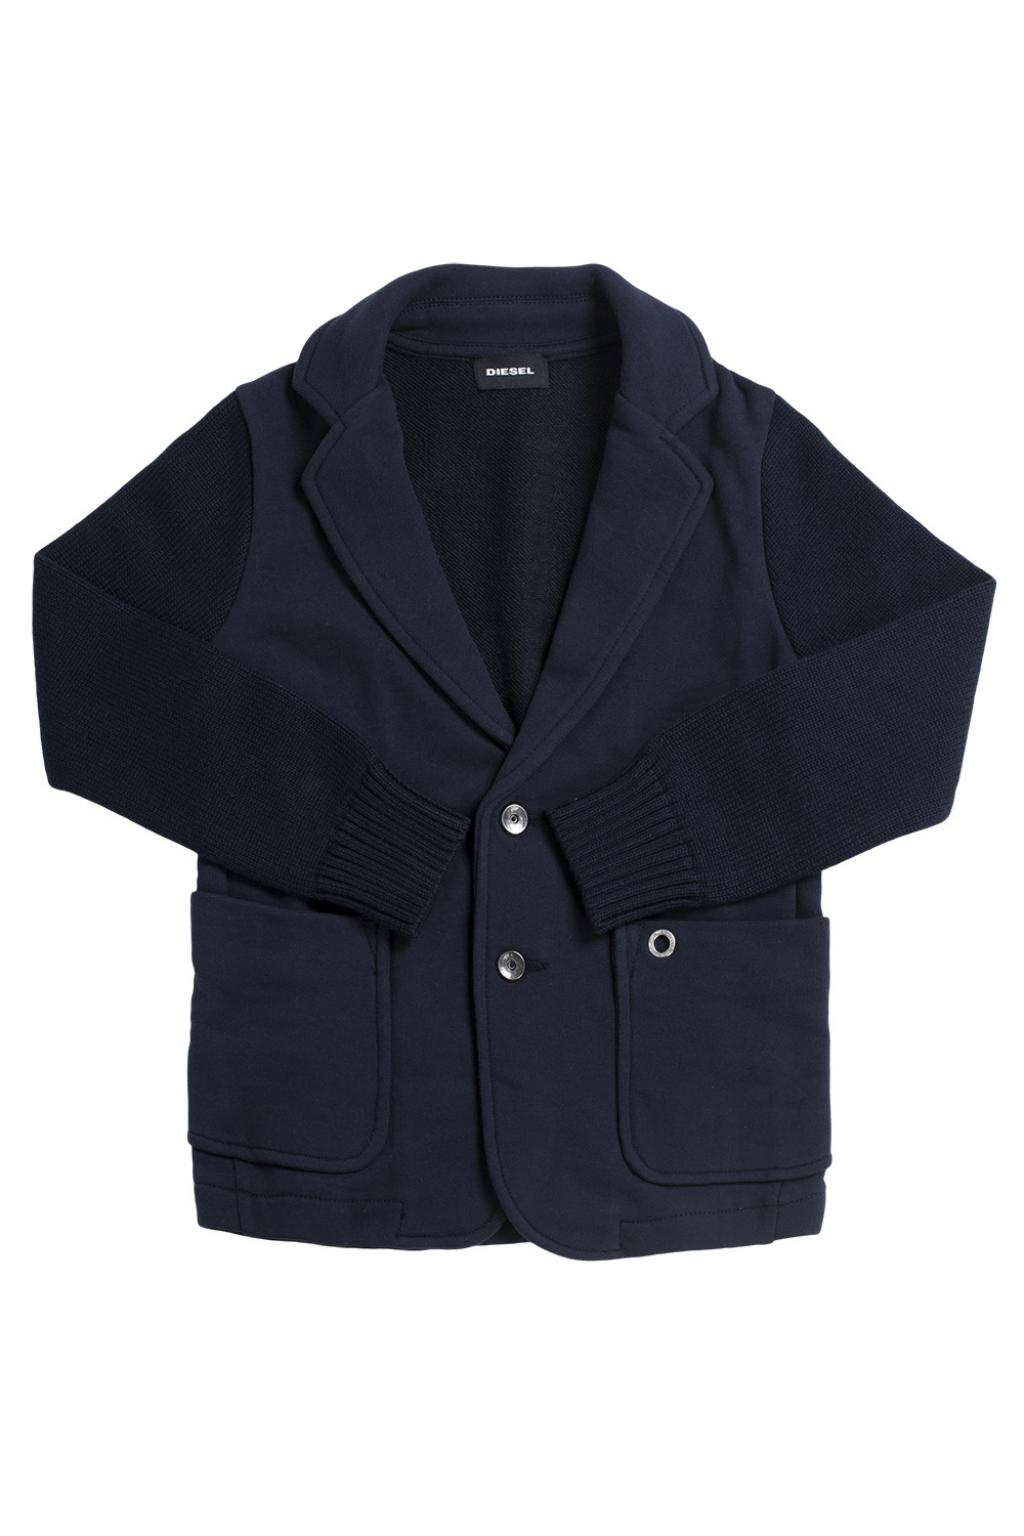 Diesel Kids Blazer with pockets